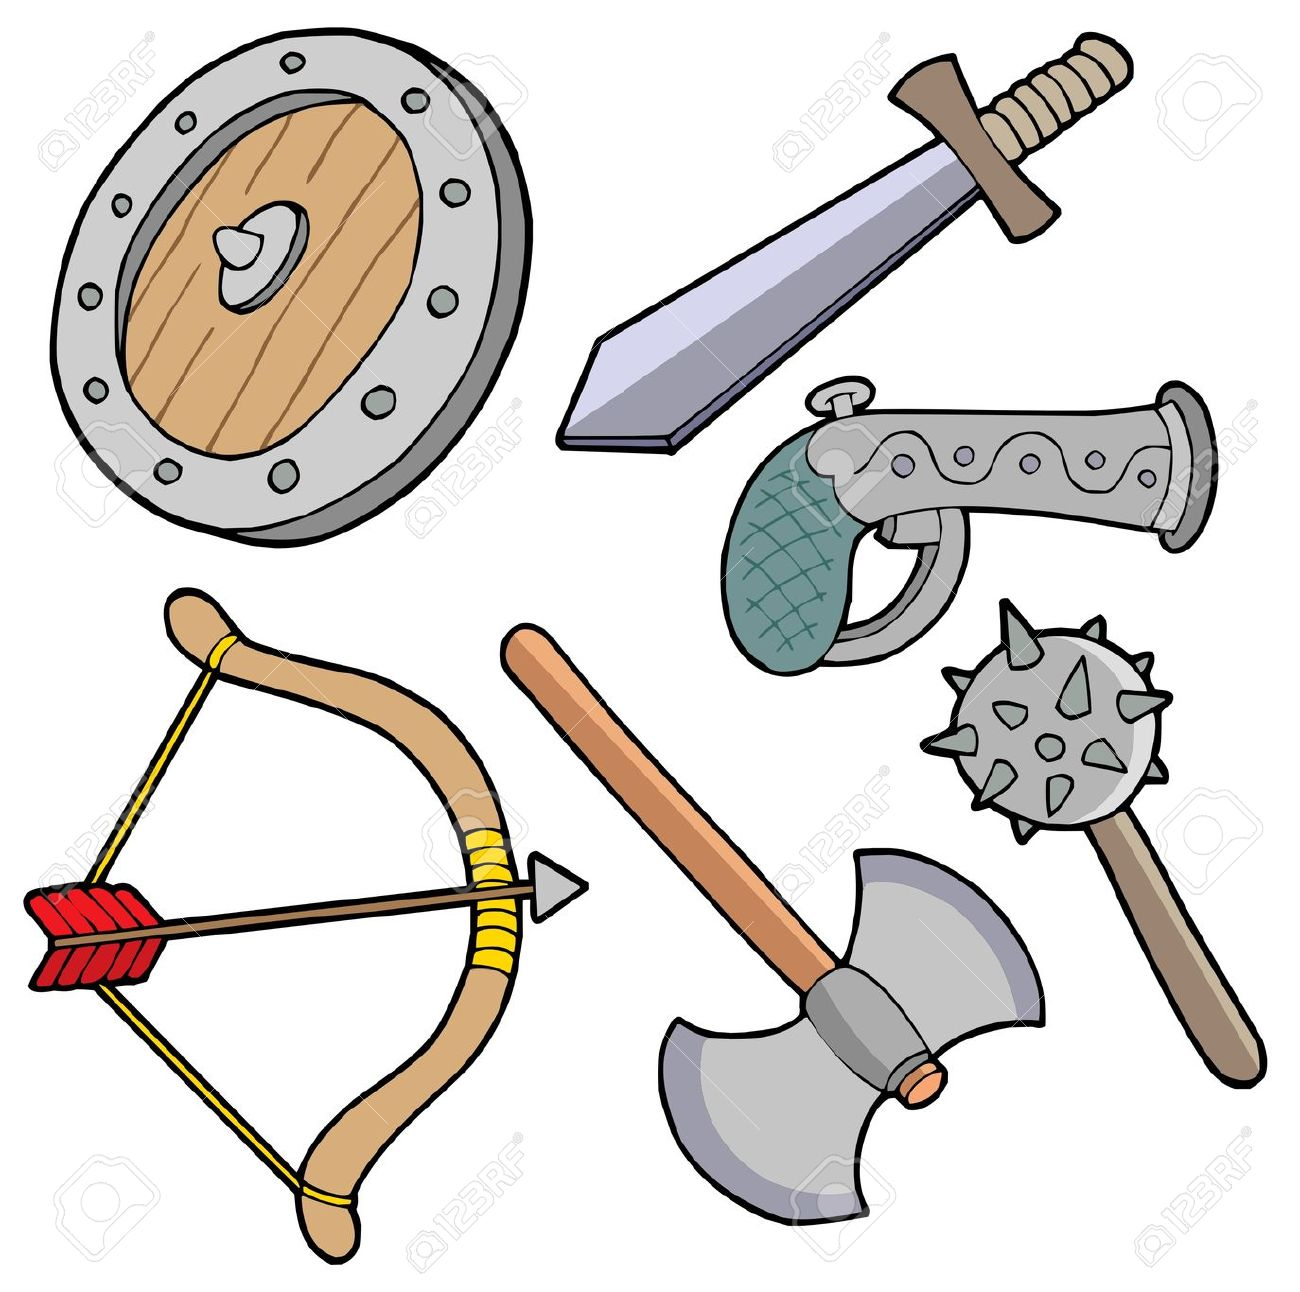 Weapon clipart Clipart Download drawings Weapon #4